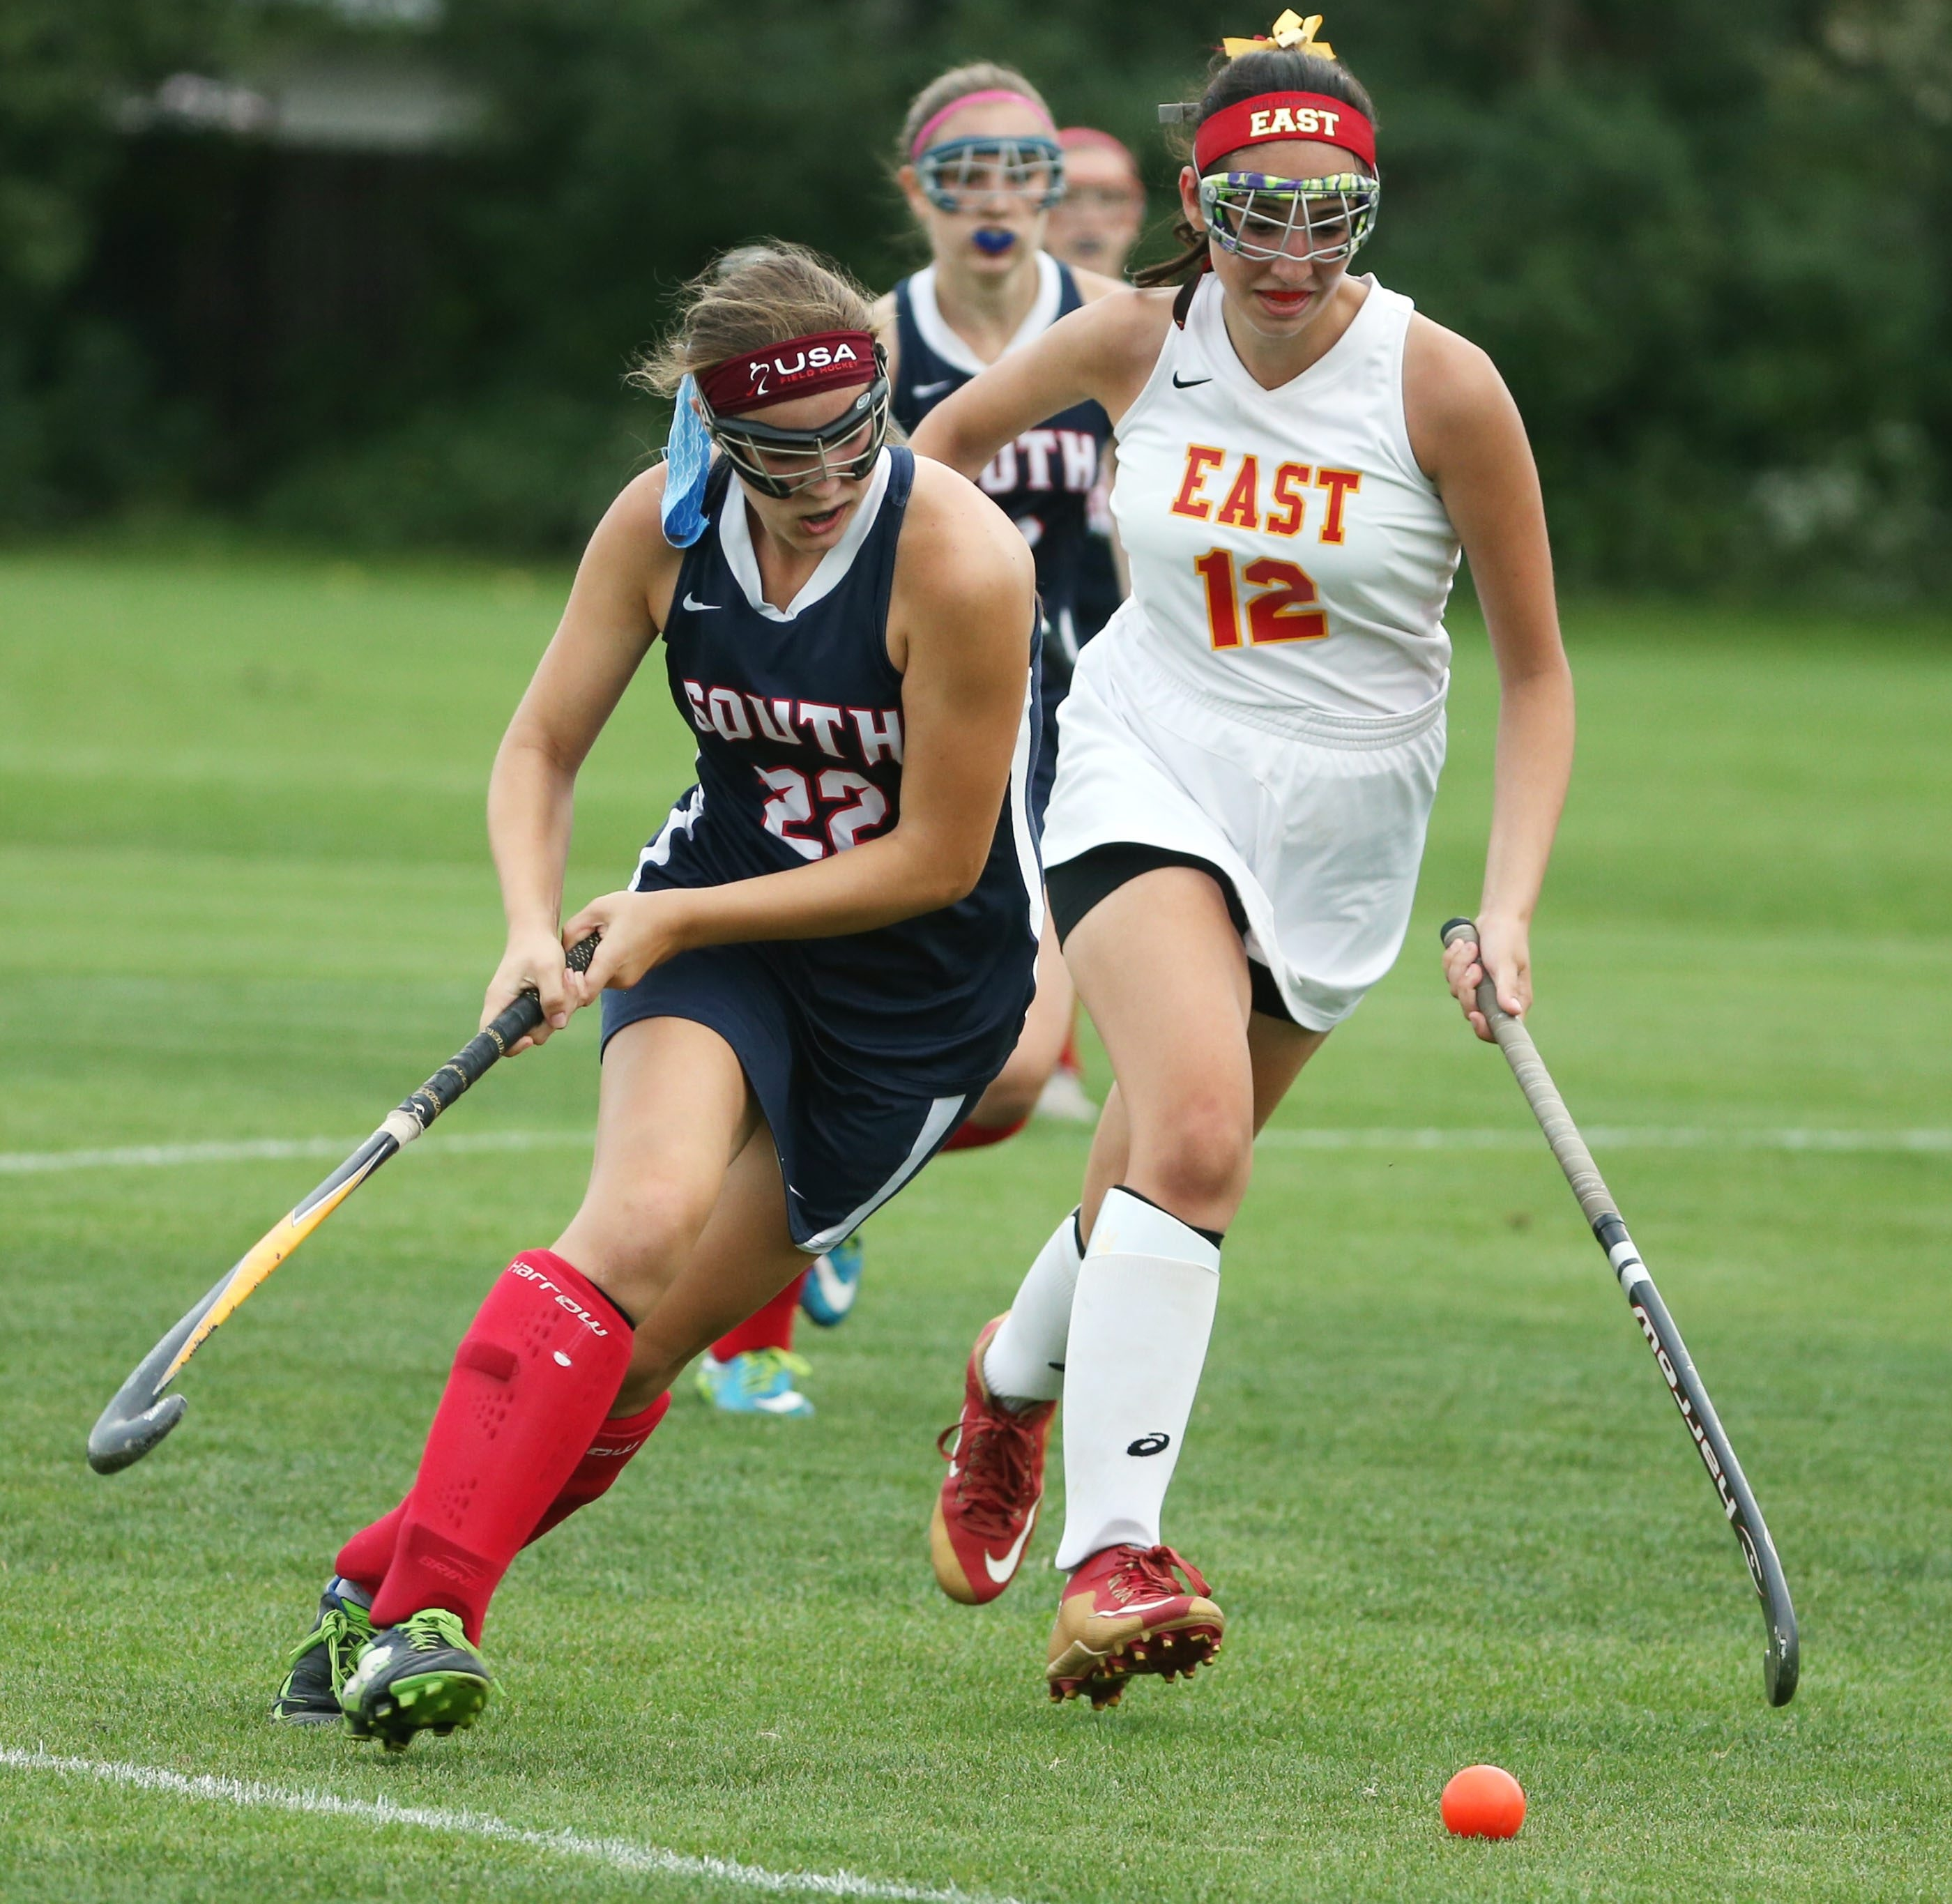 Williamsville South's Elisabeth Sidorski battles Williamsville East's Autumn D'Amico for the ball on Friday.